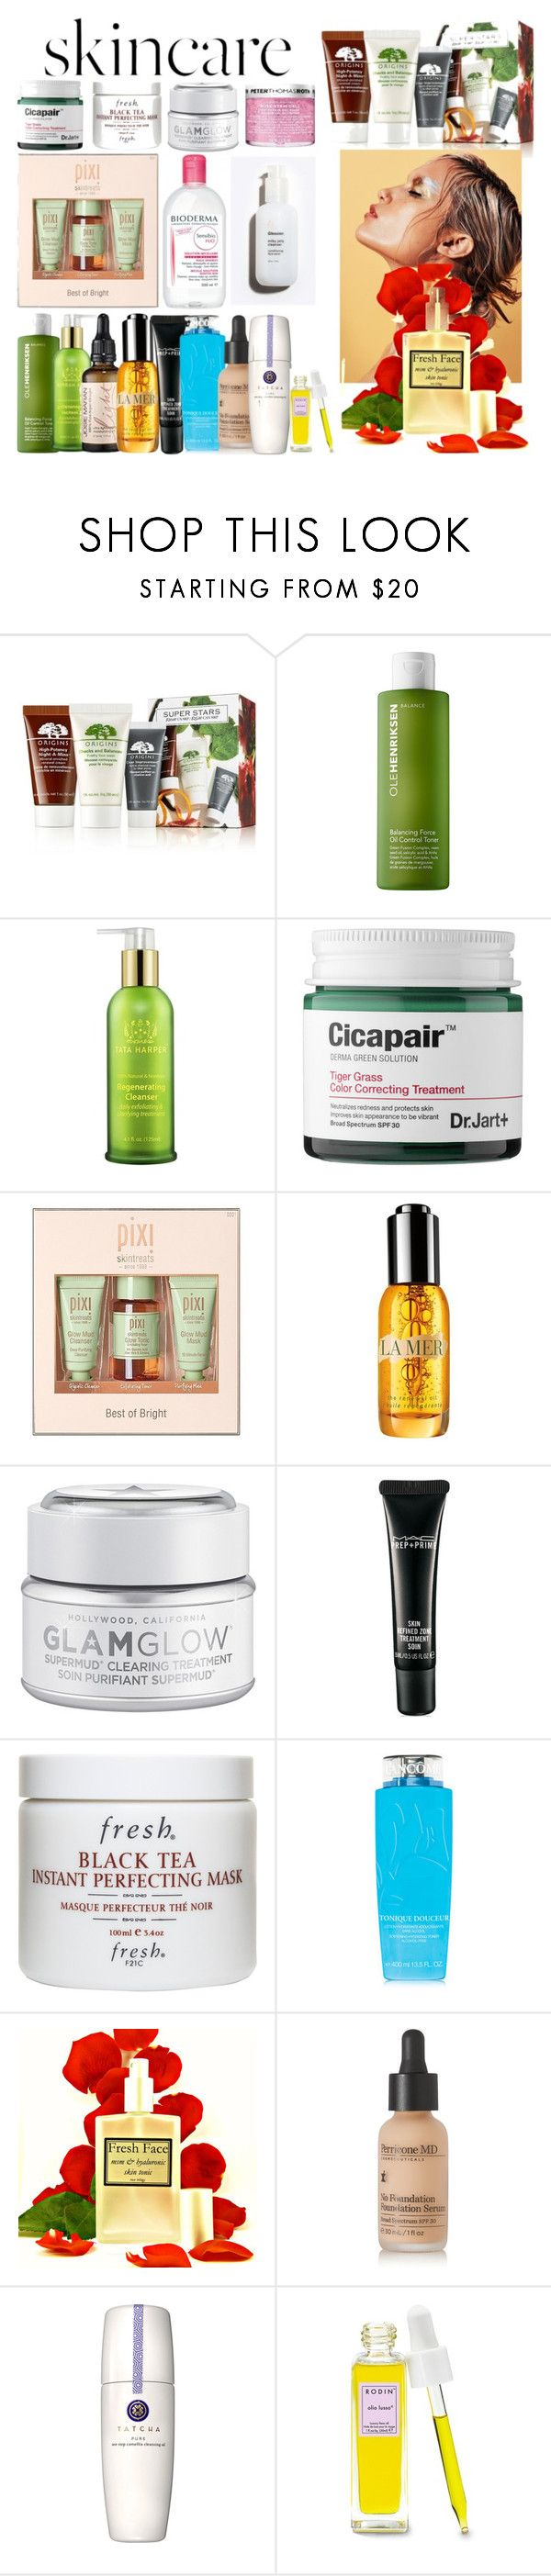 """""""We're gonna die anyway"""" by busrashin ❤ liked on Polyvore featuring beauty, Origins, Ole Henriksen, Tata Harper, H2O+, Josie Maran, Pixi, Peter Thomas Roth, La Mer and GlamGlow"""